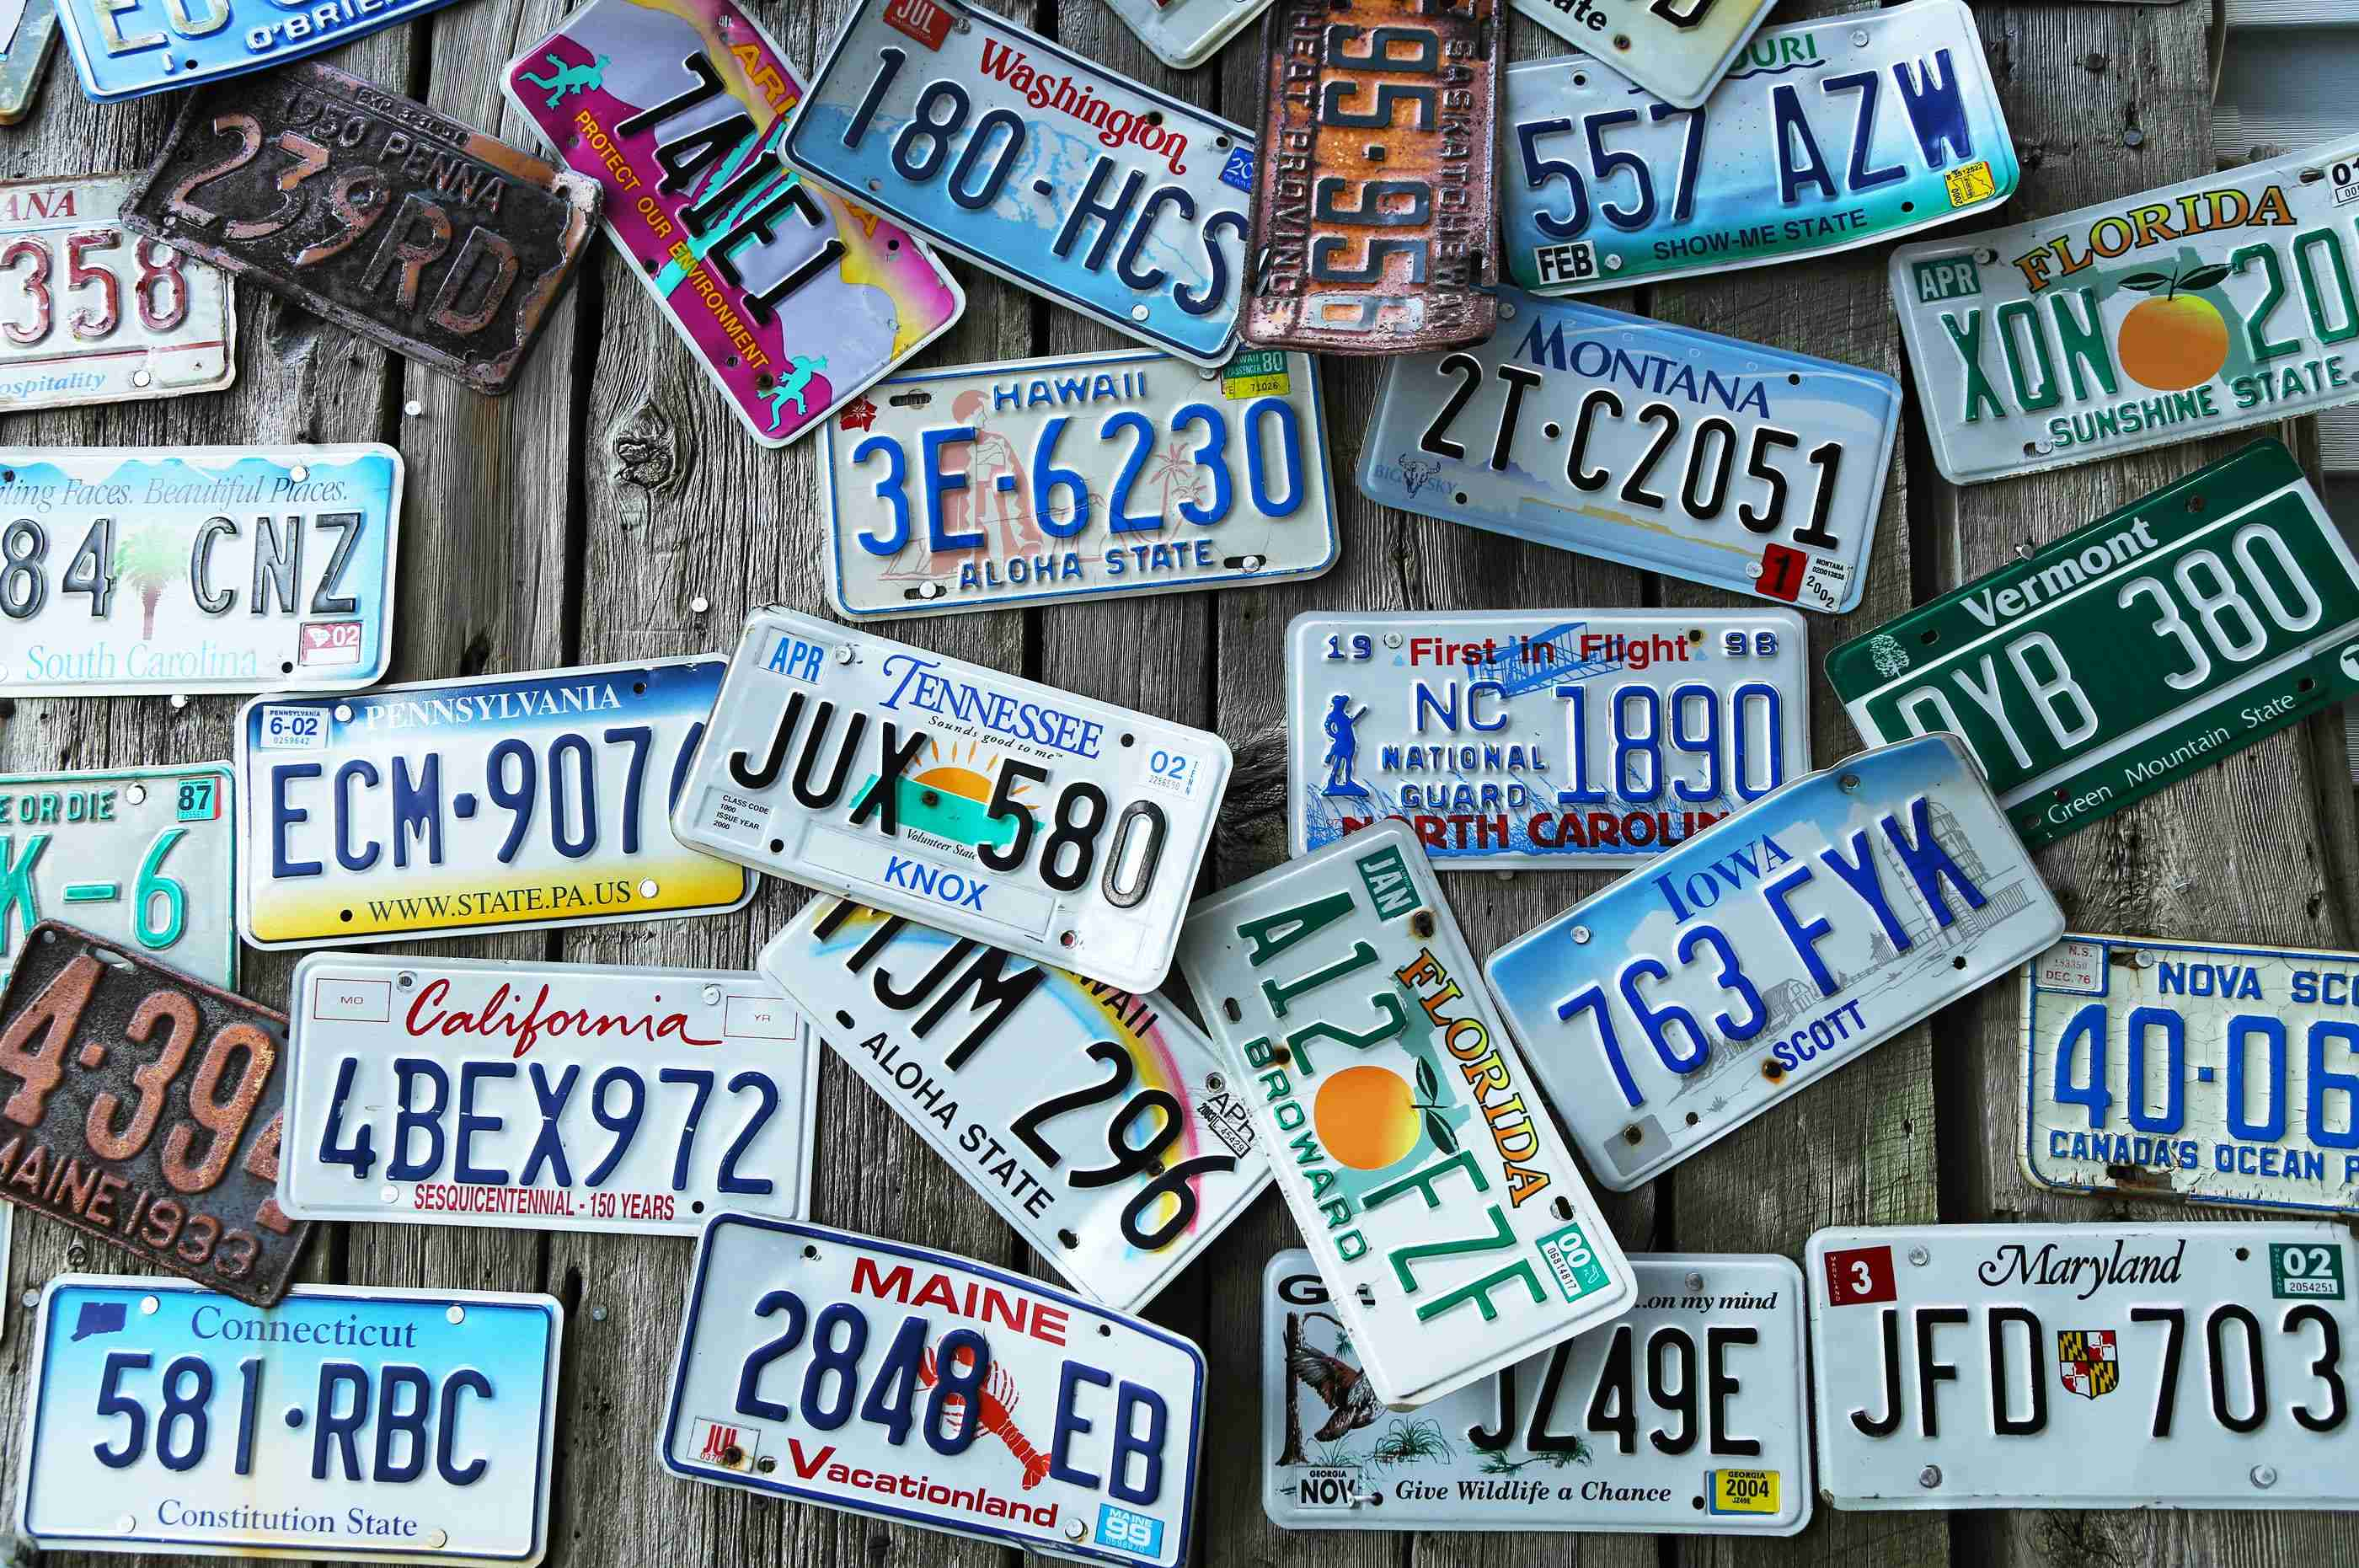 Old car license plates on the wall – 951 The Bull